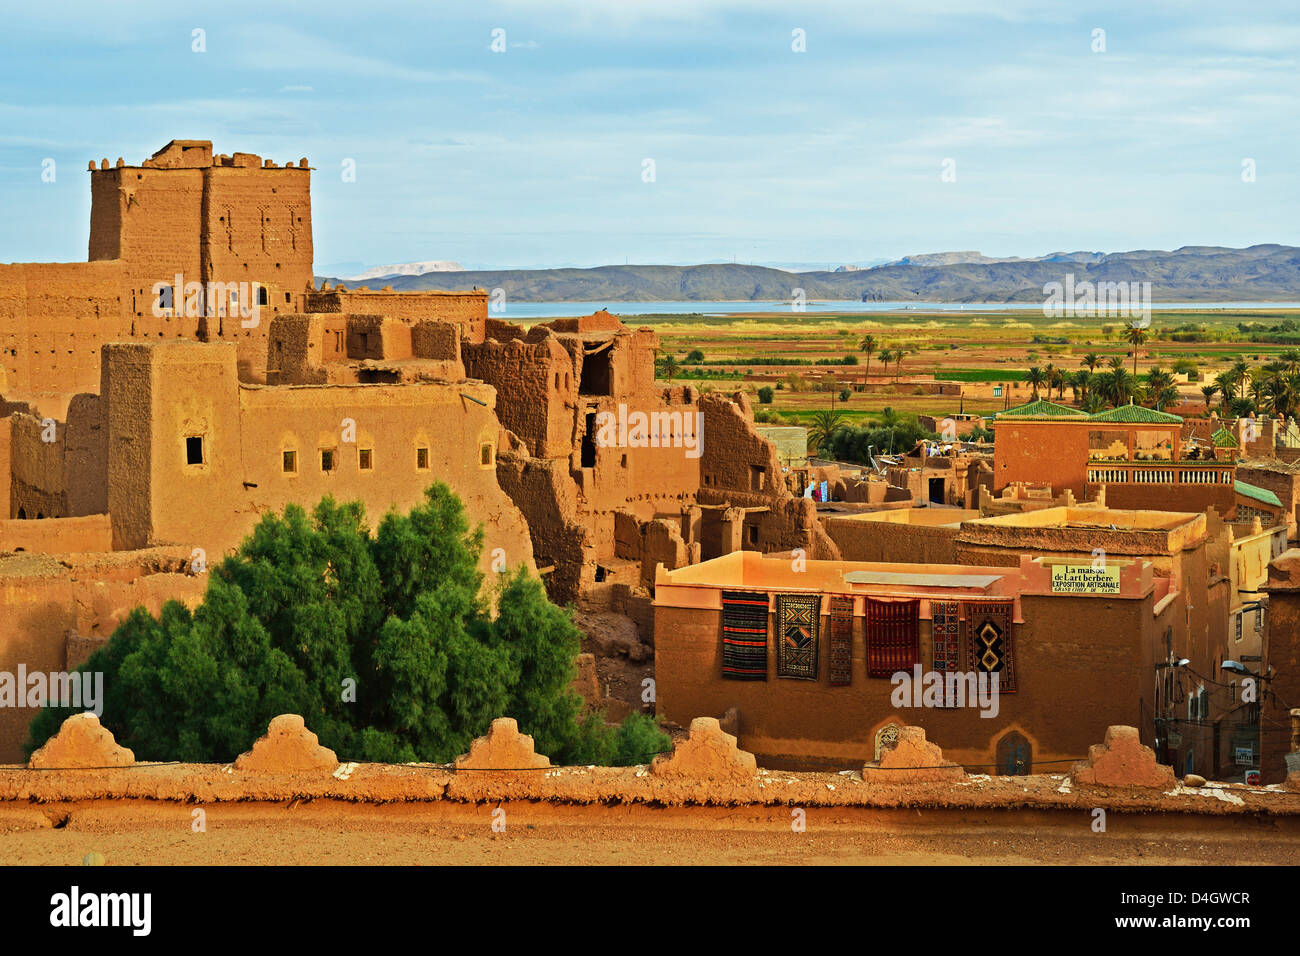 Kasbah Taourirt, Ouarzazate, Morocco, North Africa - Stock Image